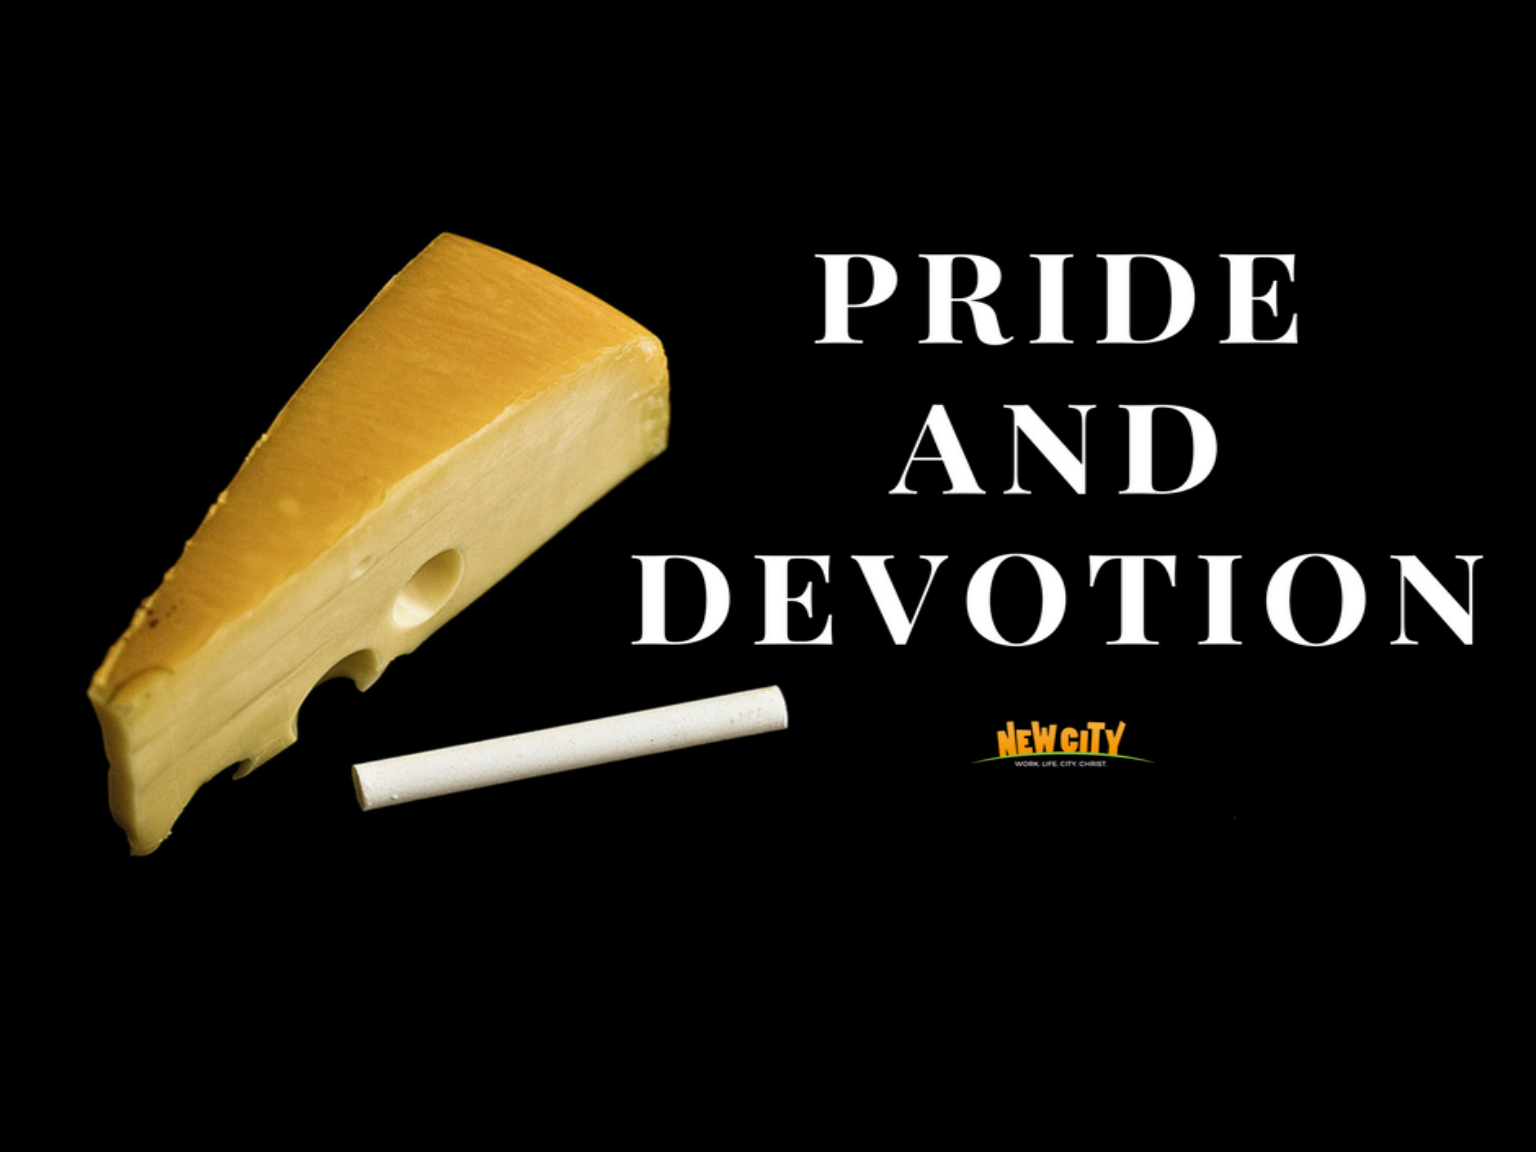 Pride and Devotion Image